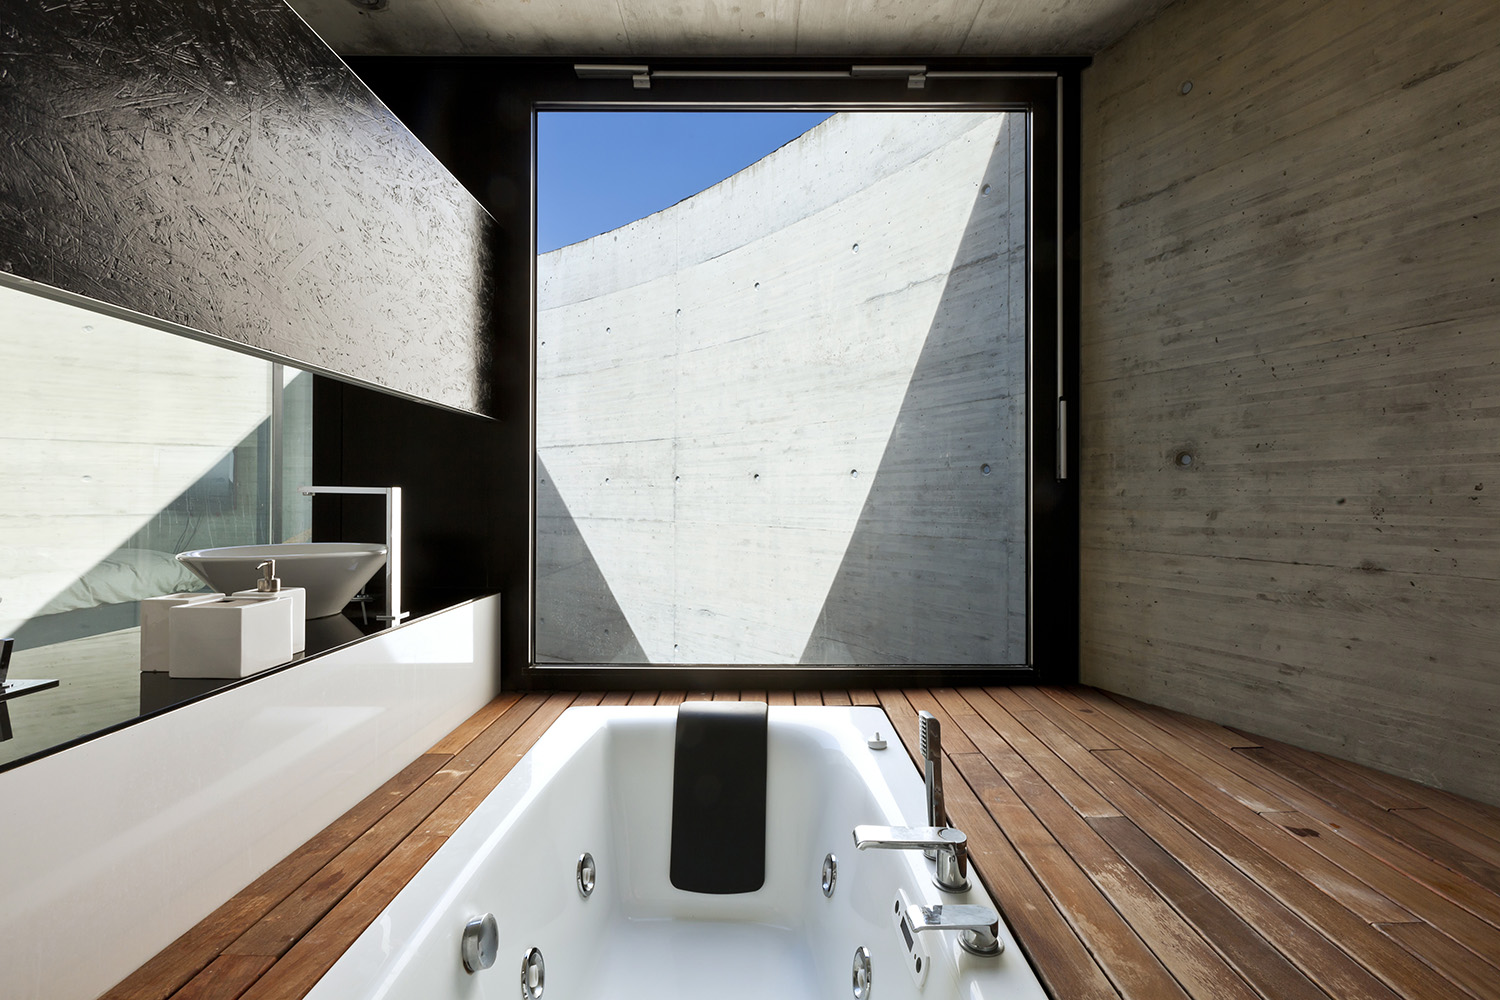 beautiful modern house in cement, interior, bathroom